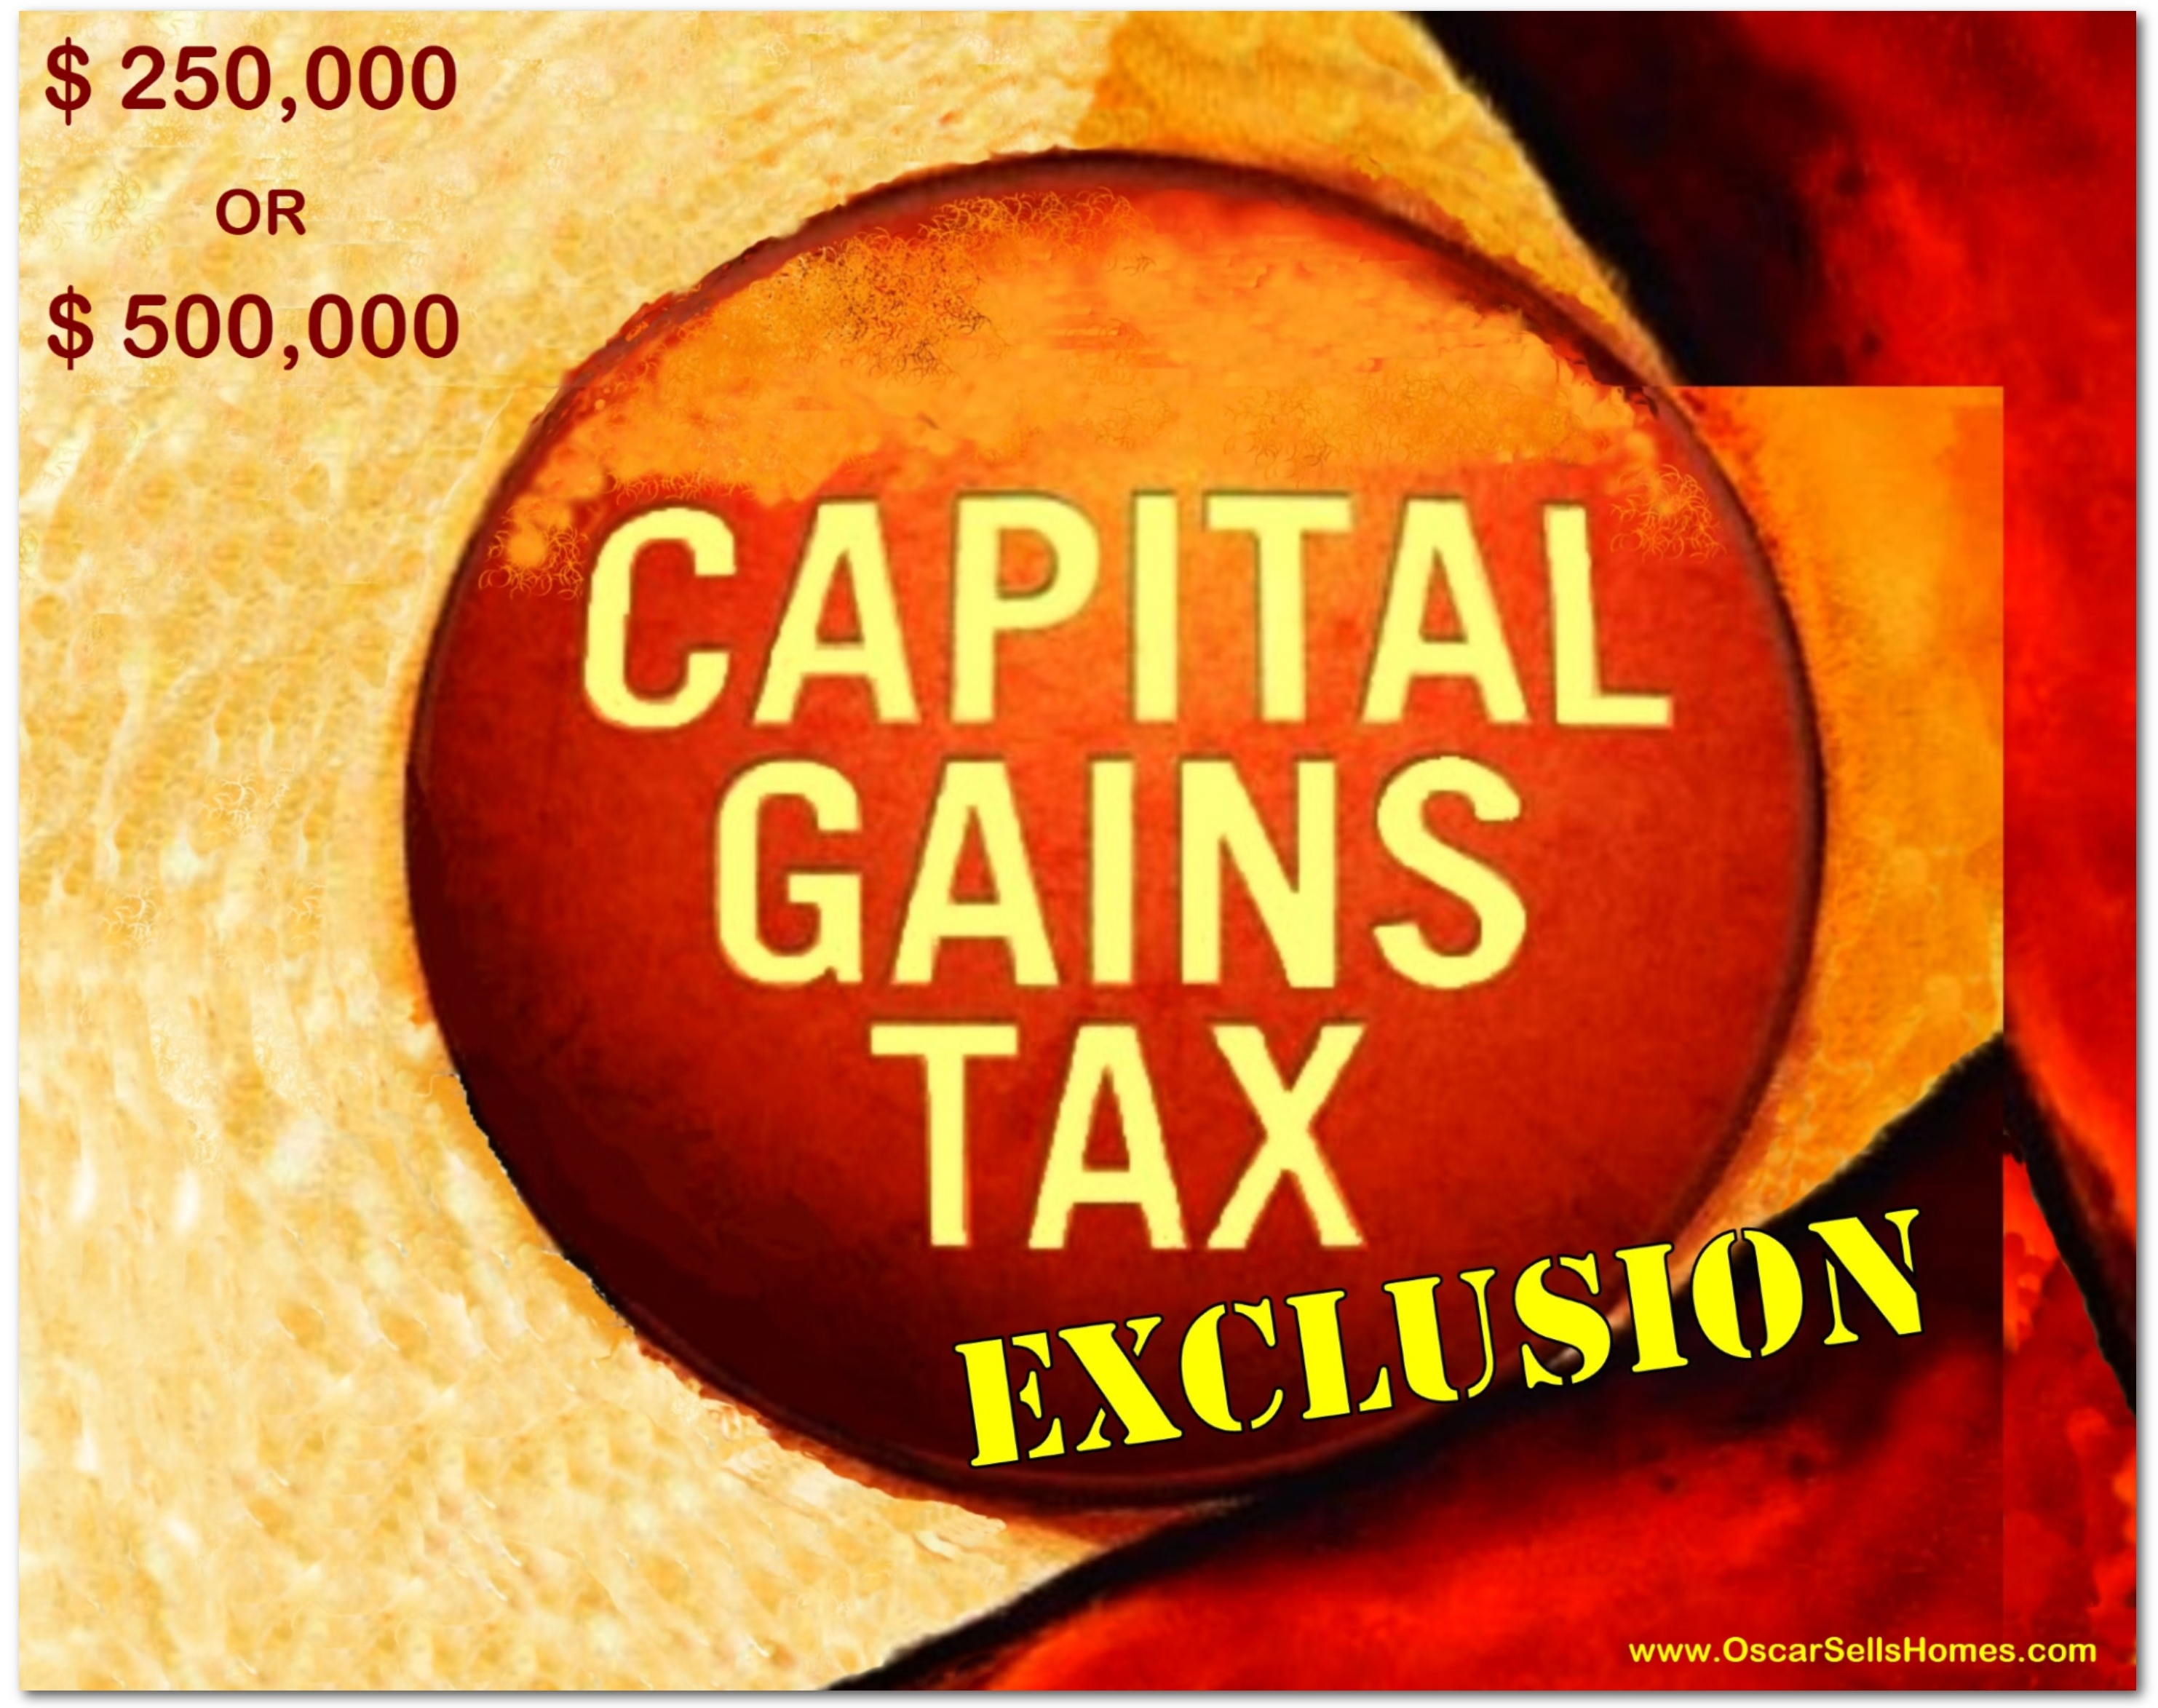 Sale of Home Capital Gains Tax Exclusion